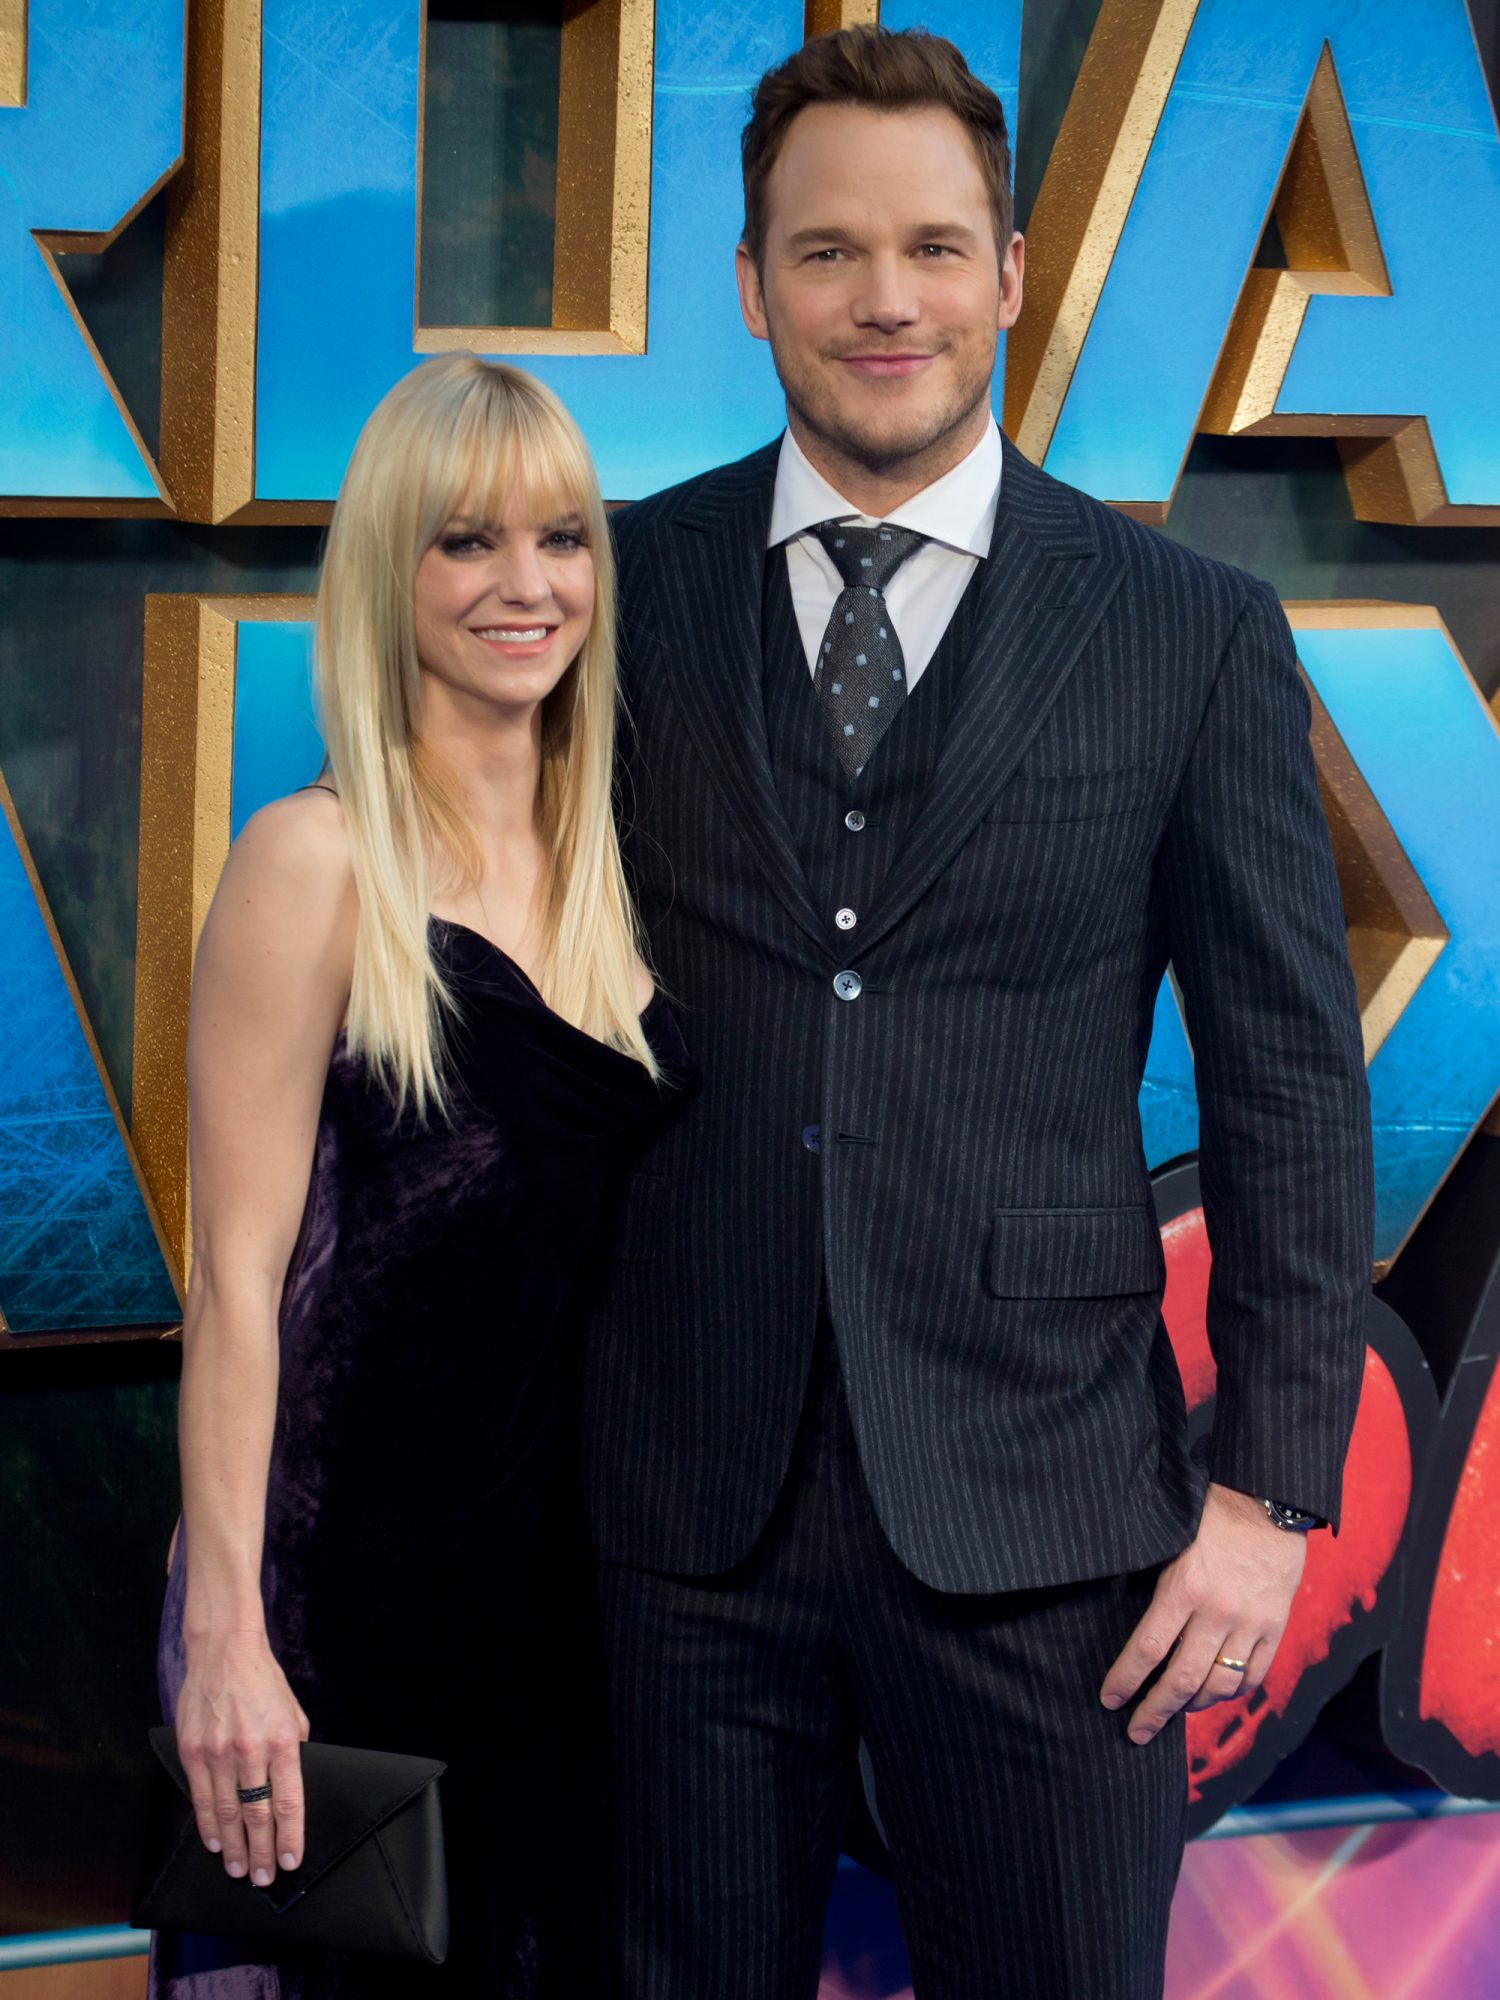 Anna Faris and Chris Pratt - Lead